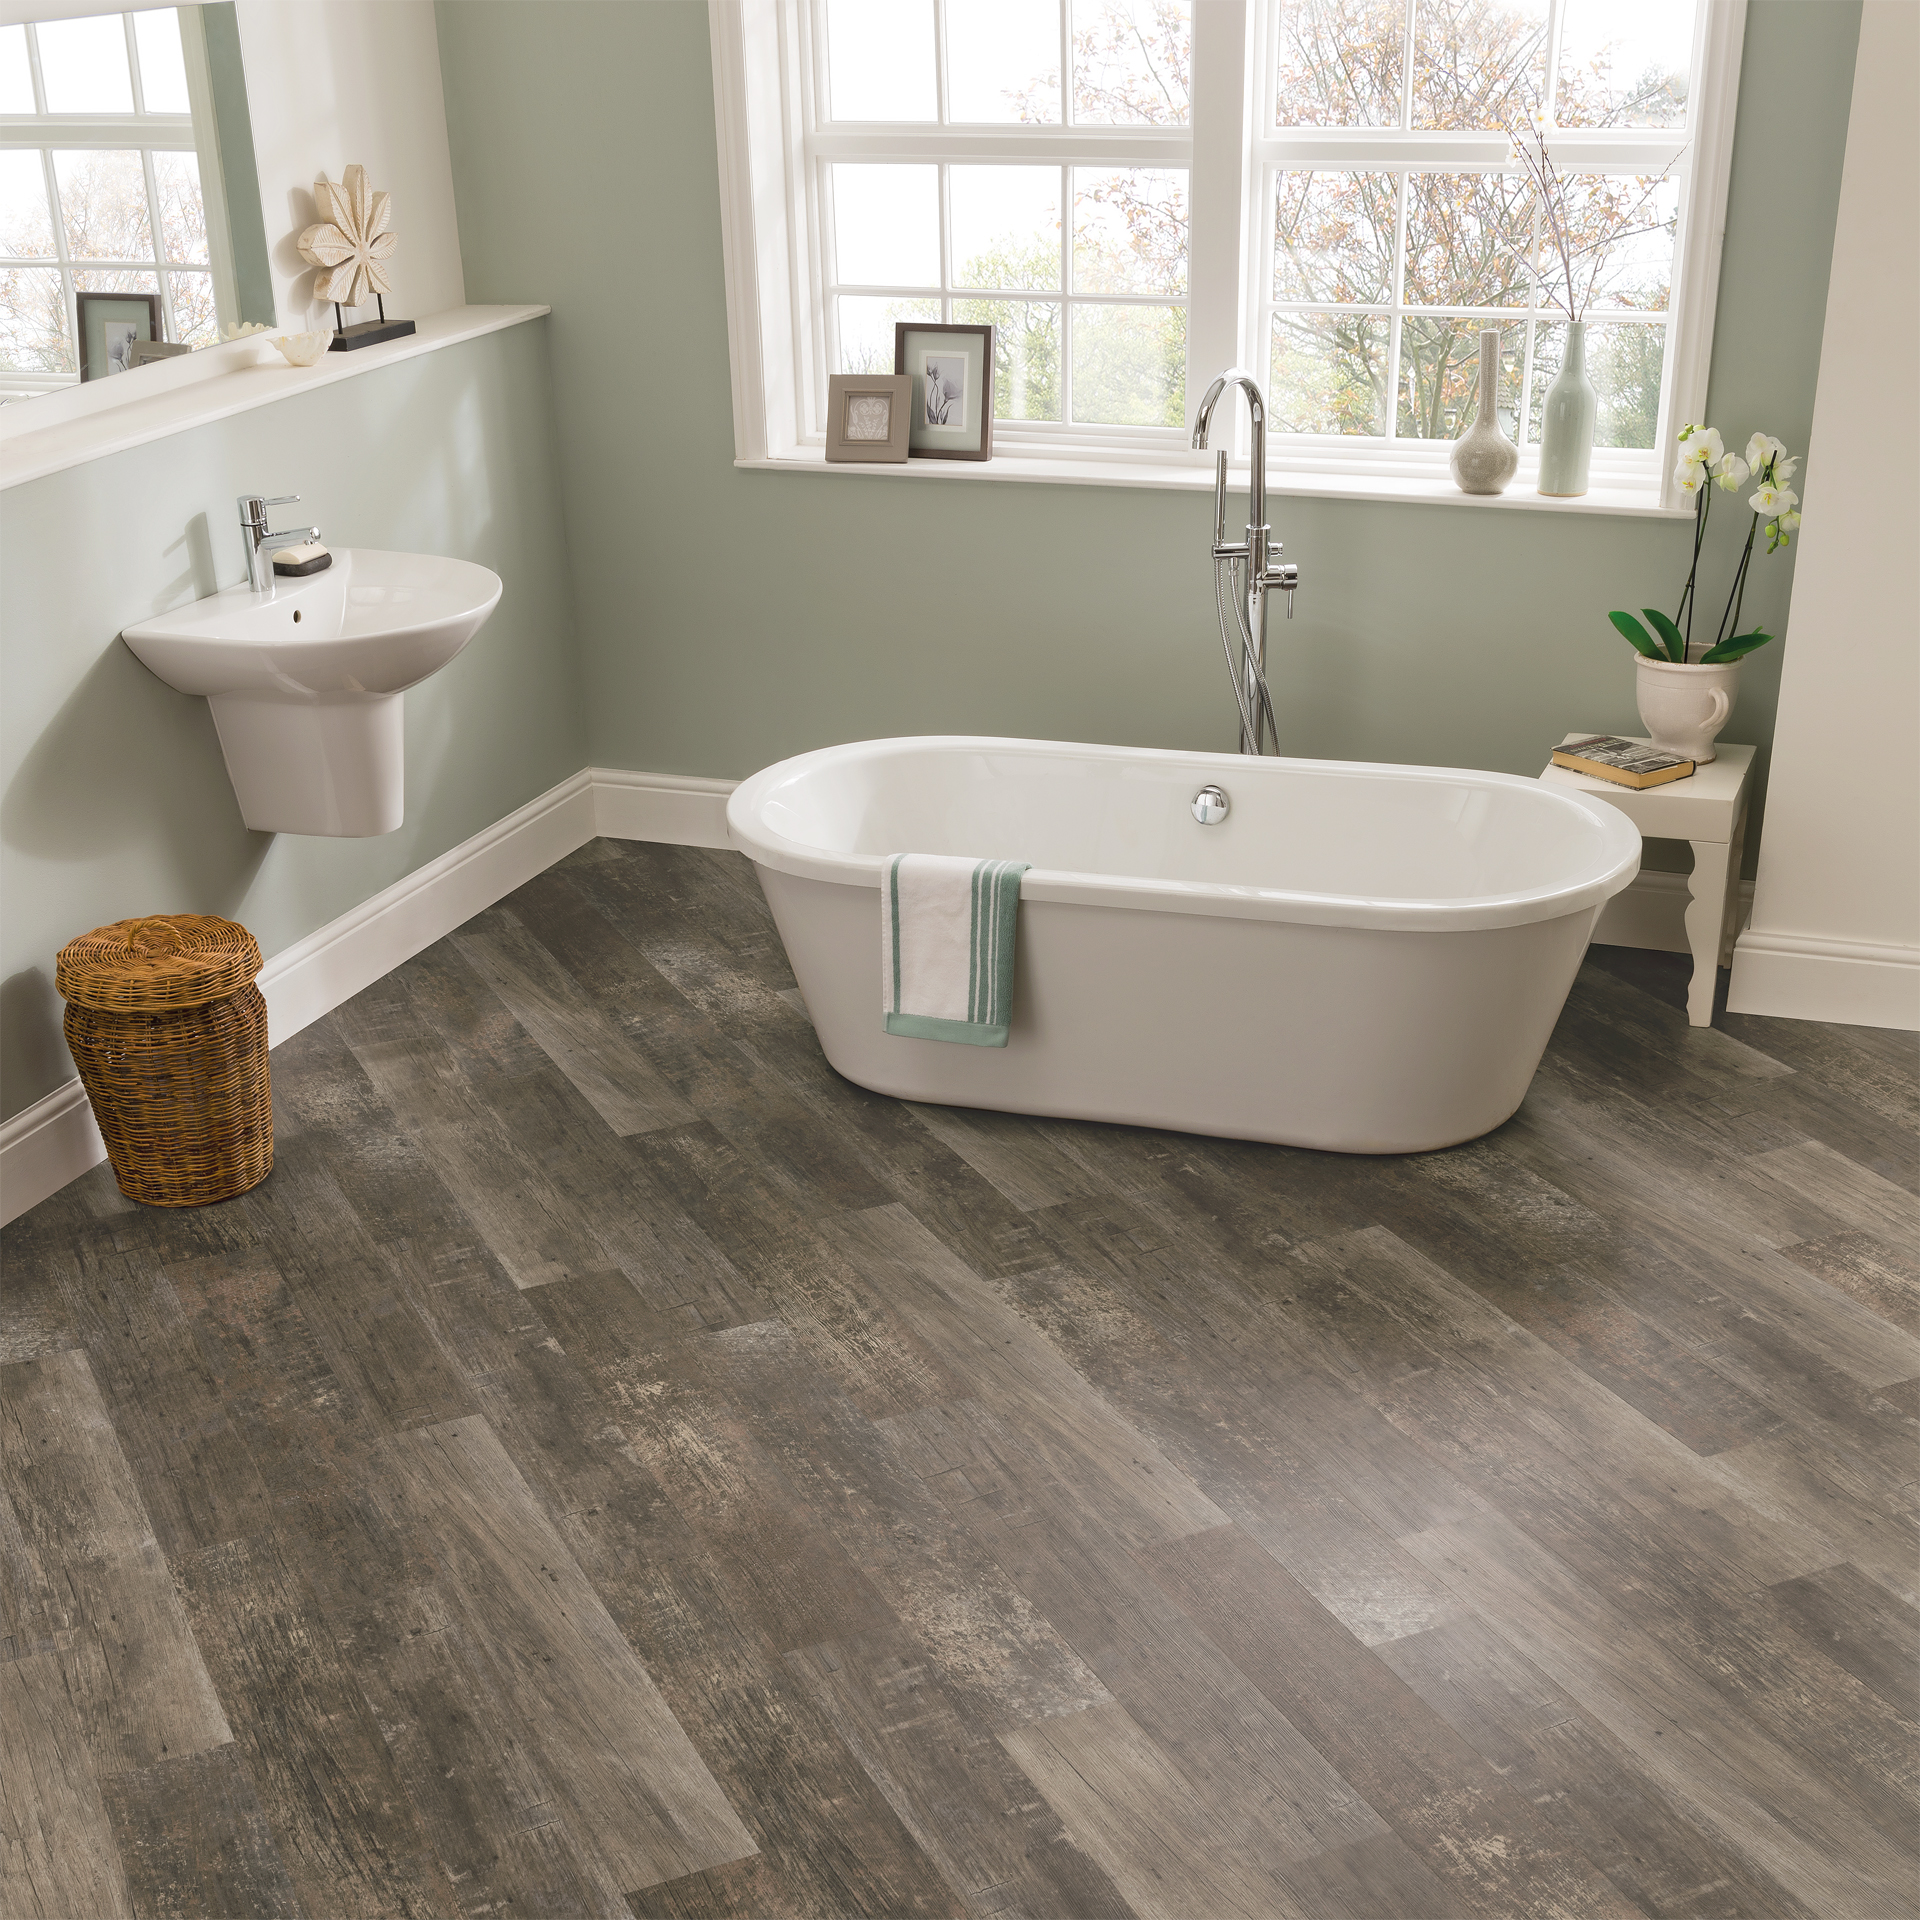 VGW99T Reclaimed Redwood Bathroom Flooring - Van Gogh